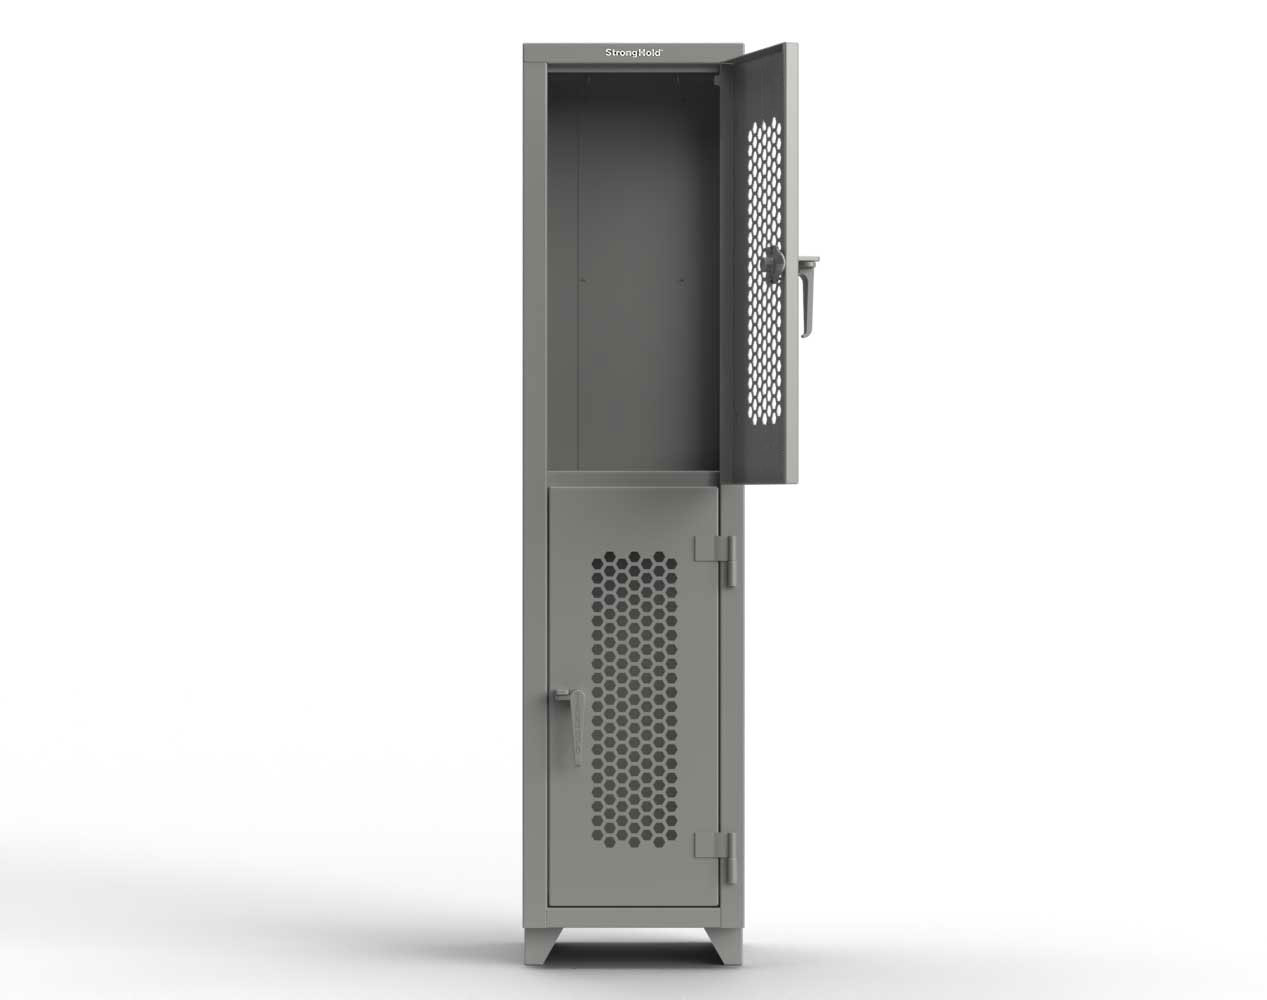 Extra Heavy Duty 14 GA Double-Tier Ventilated Locker, 2 Compartments – 18 in. W x 18 in. D x 75 in. H